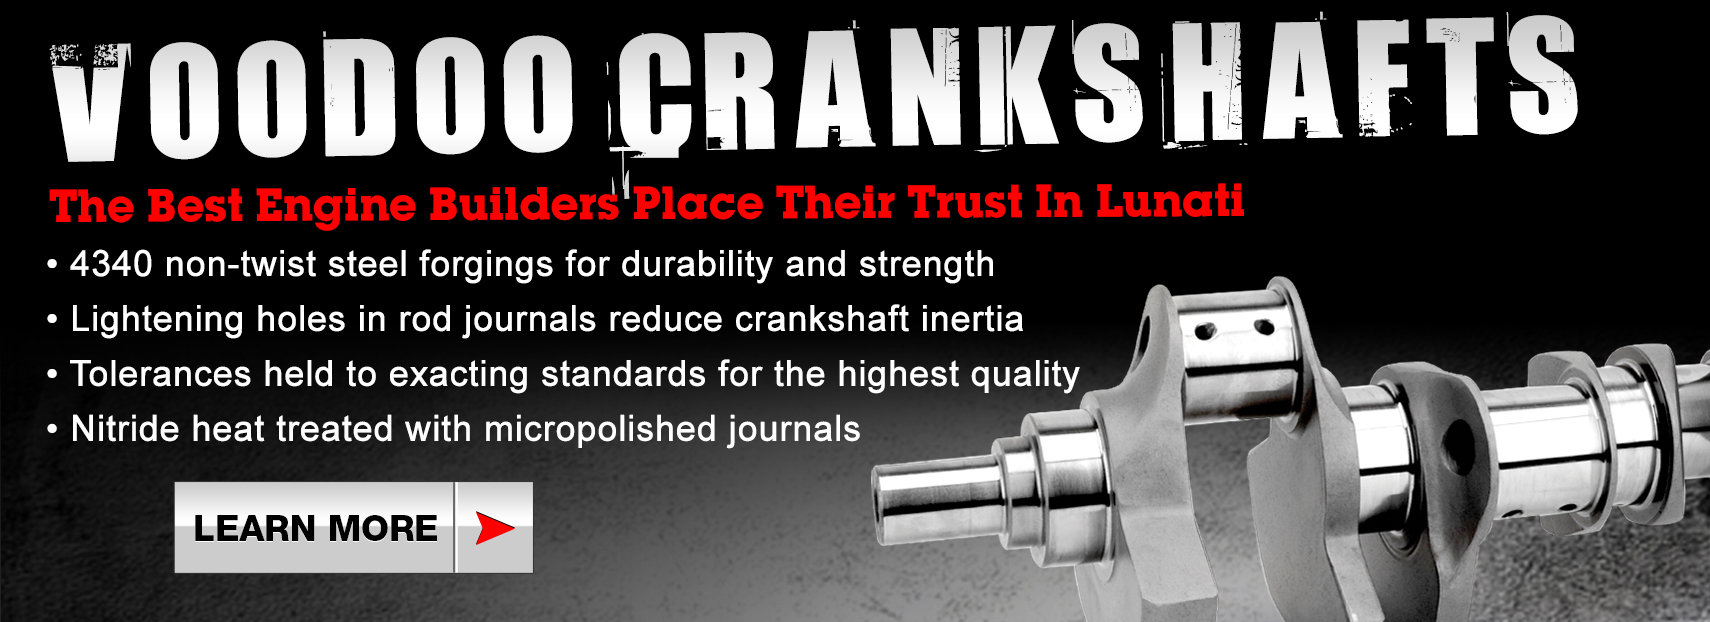 Voodoo Crankshafts